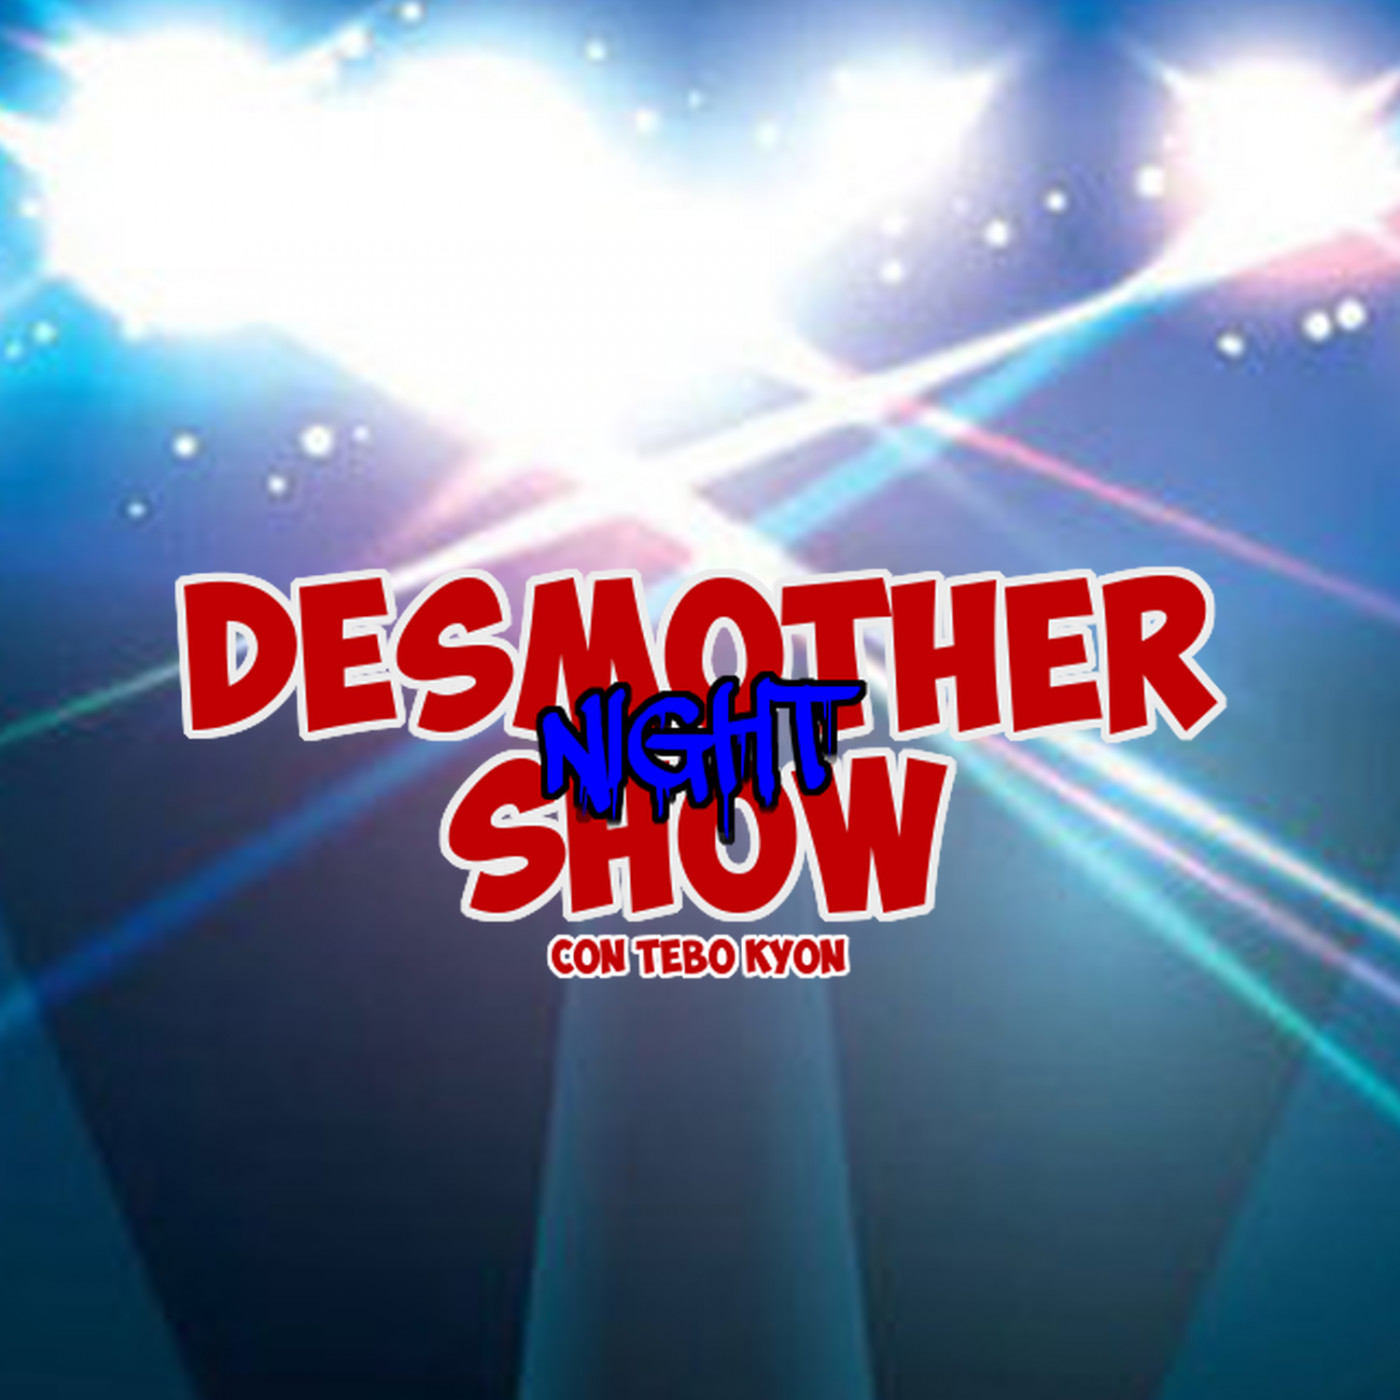 Desmother Show